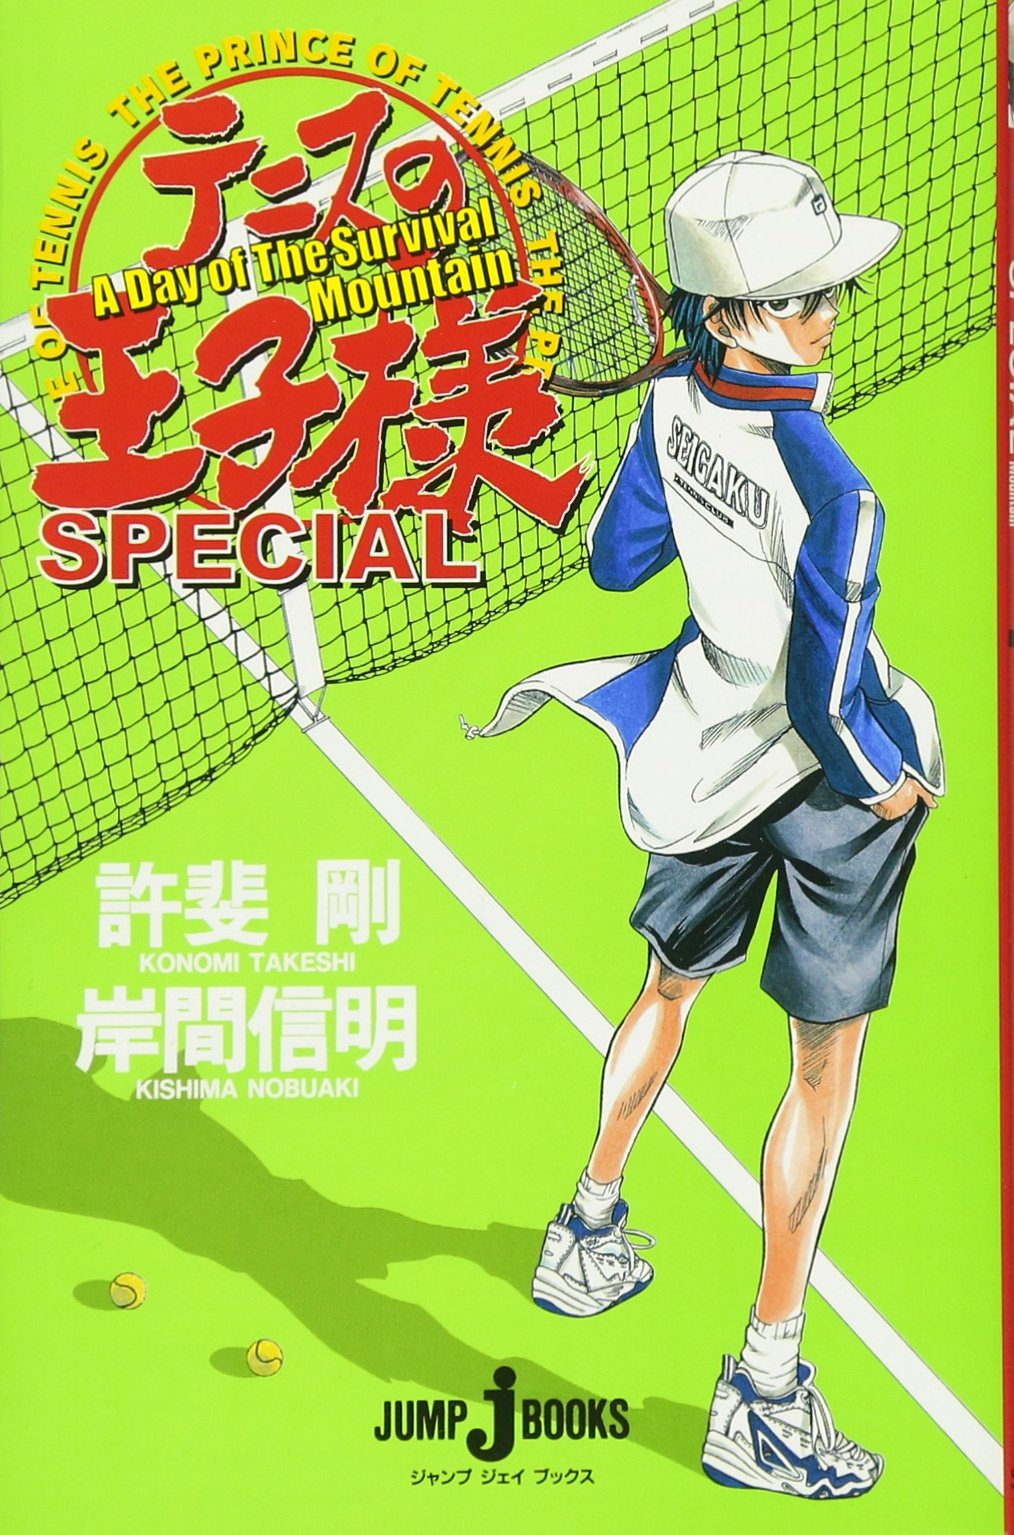 Prince SPECIAL A Day of Survival Mountain of Tennis (JUMP j BOOKS) (2003) ISBN: 4087031292 [Japanese Import] (Japanese) Paperback Shinsho